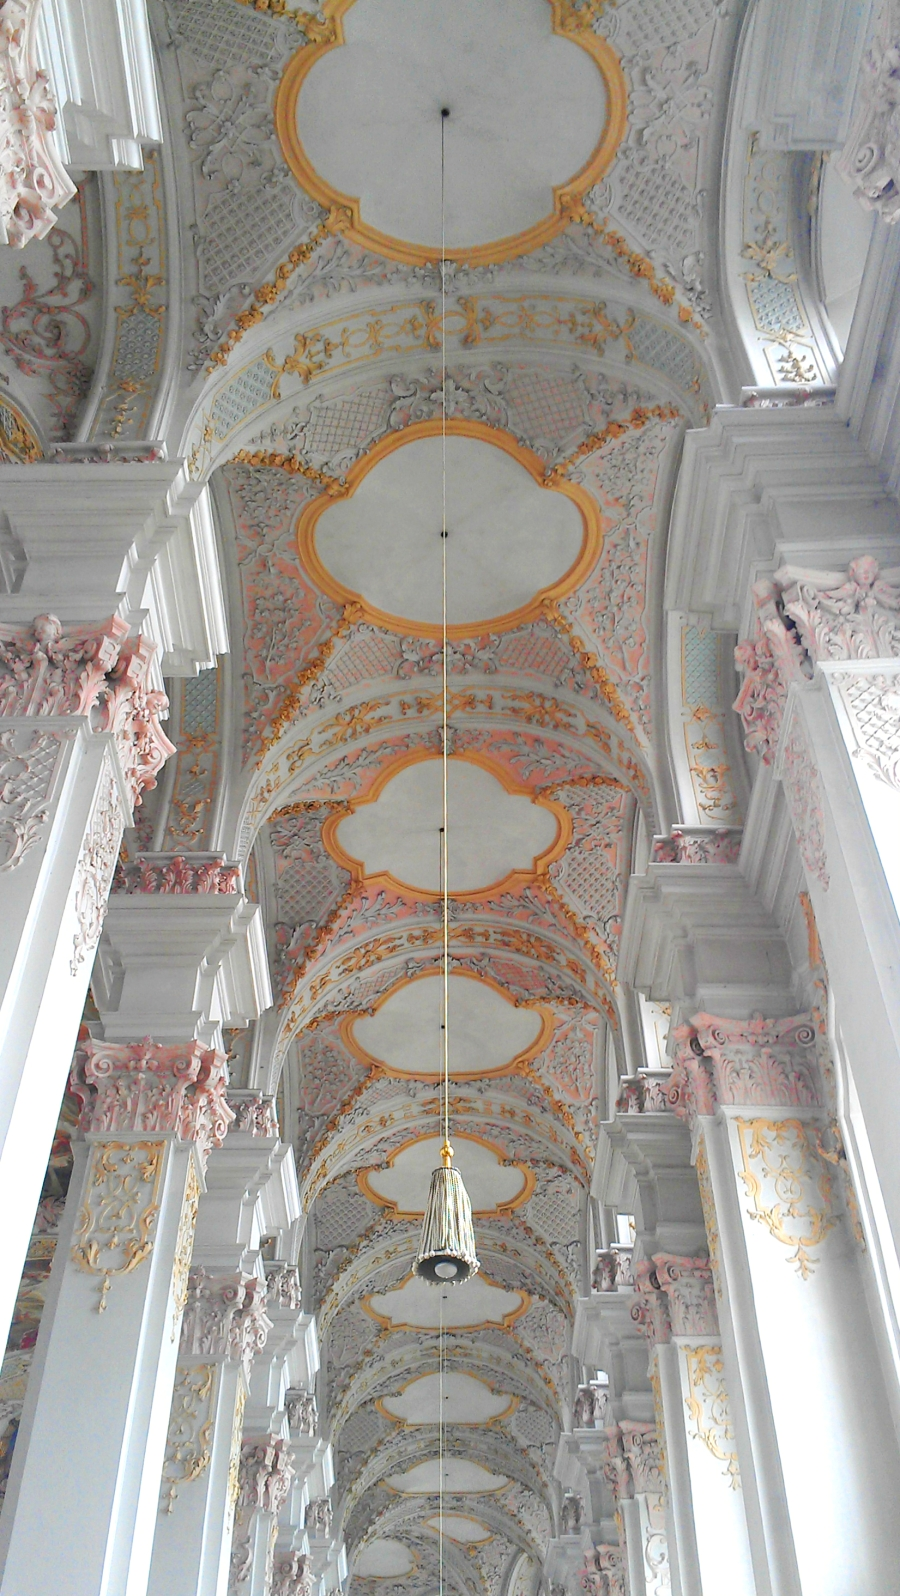 Hospice of the Holy Ghost, Munich, Germany.